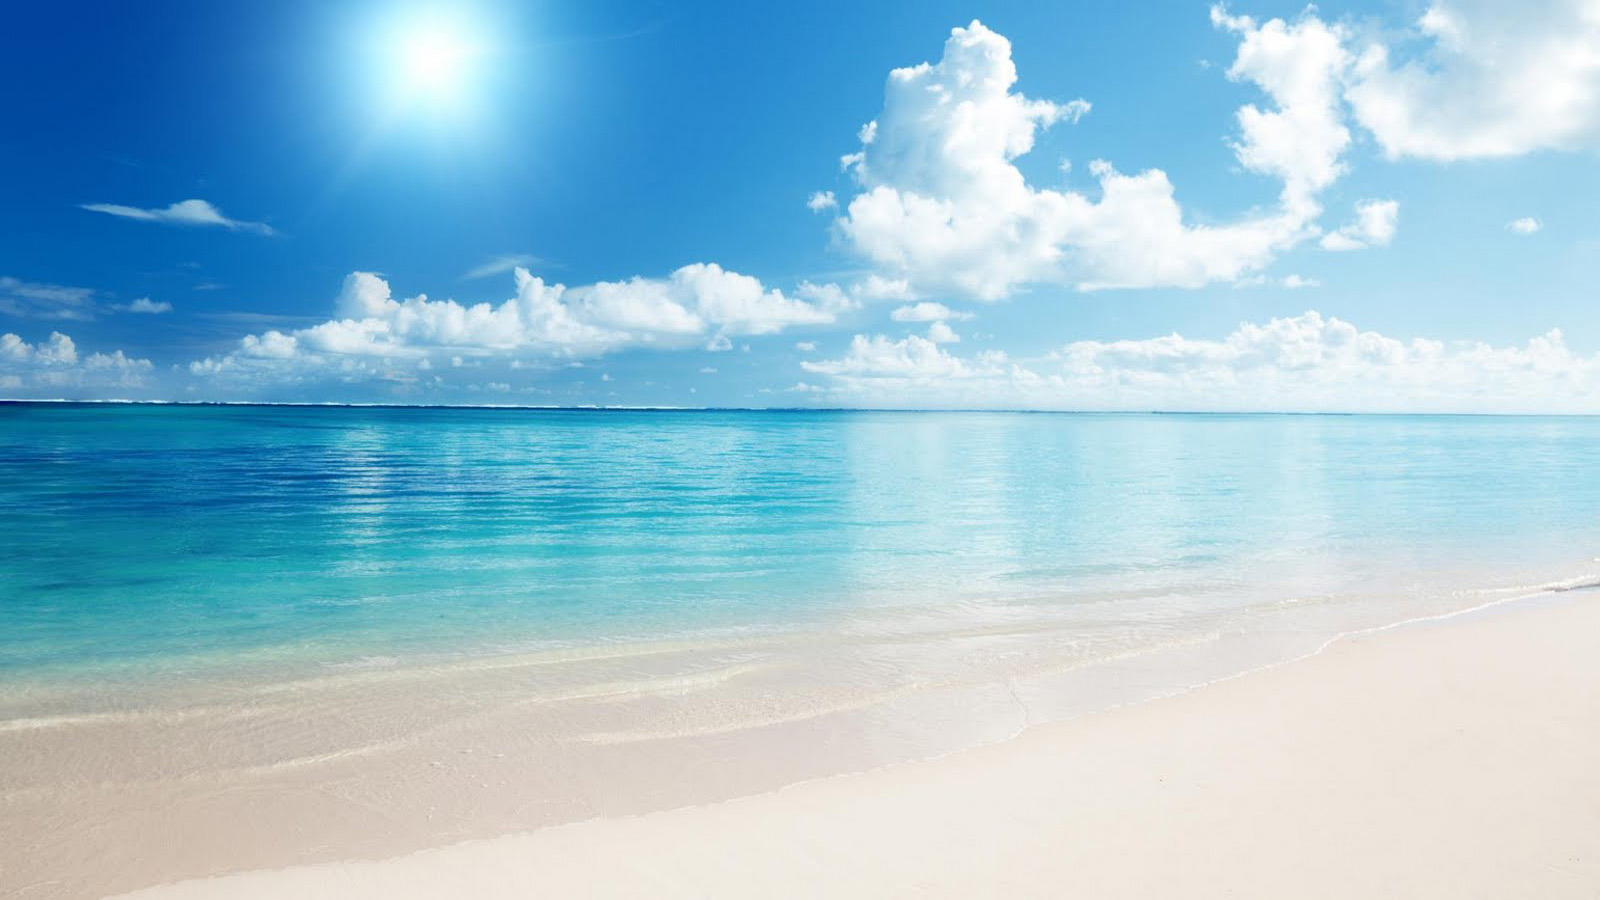 Sunny Beach Wallpaper photos of How to Choose Beautiful Backgrounds 1600x900